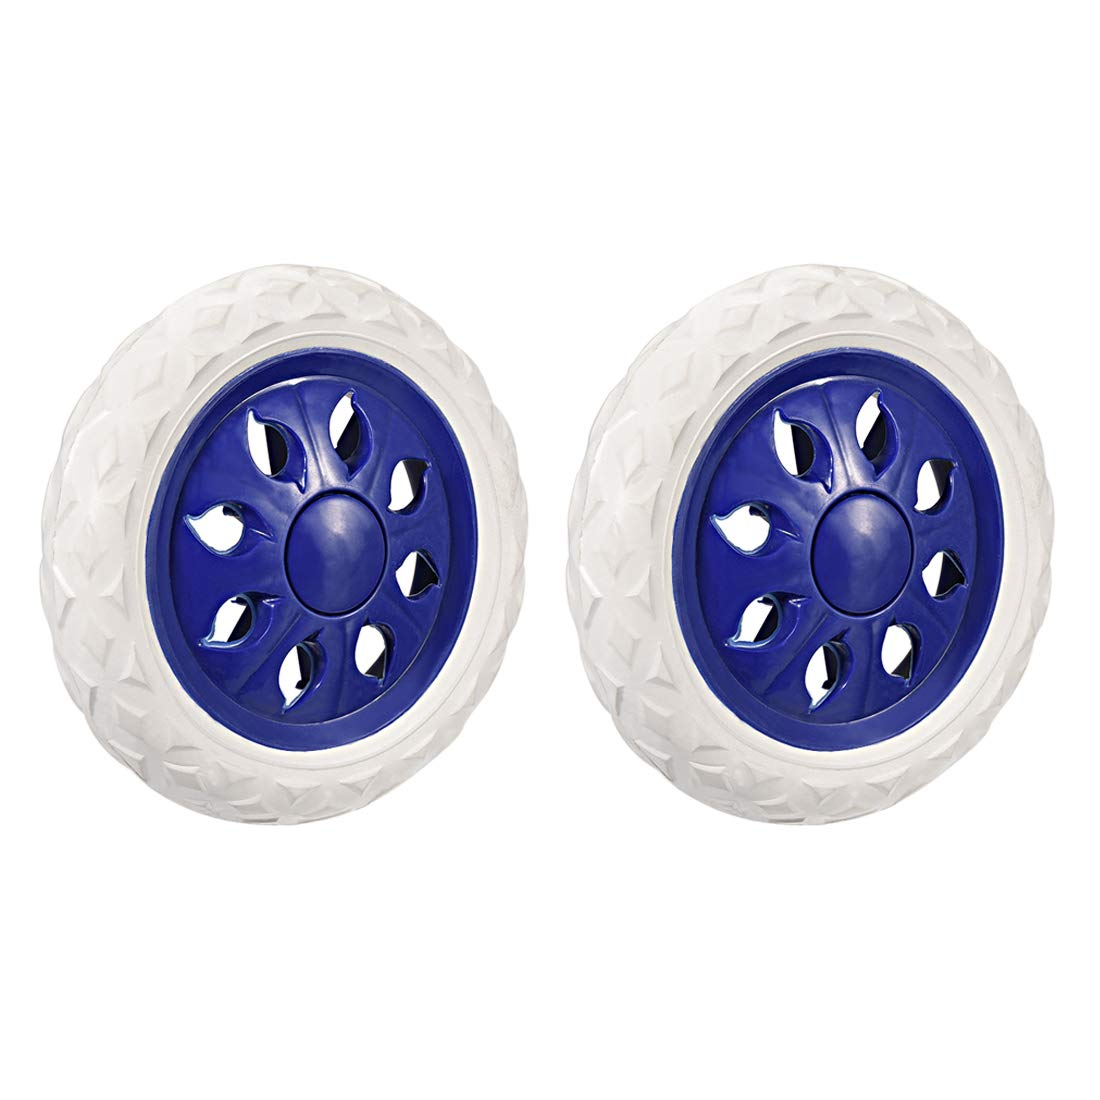 uxcell Shopping Cart Wheels Trolley Caster Replacement 6.5 Inch Dia Rubber Foaming Blue 2pcs